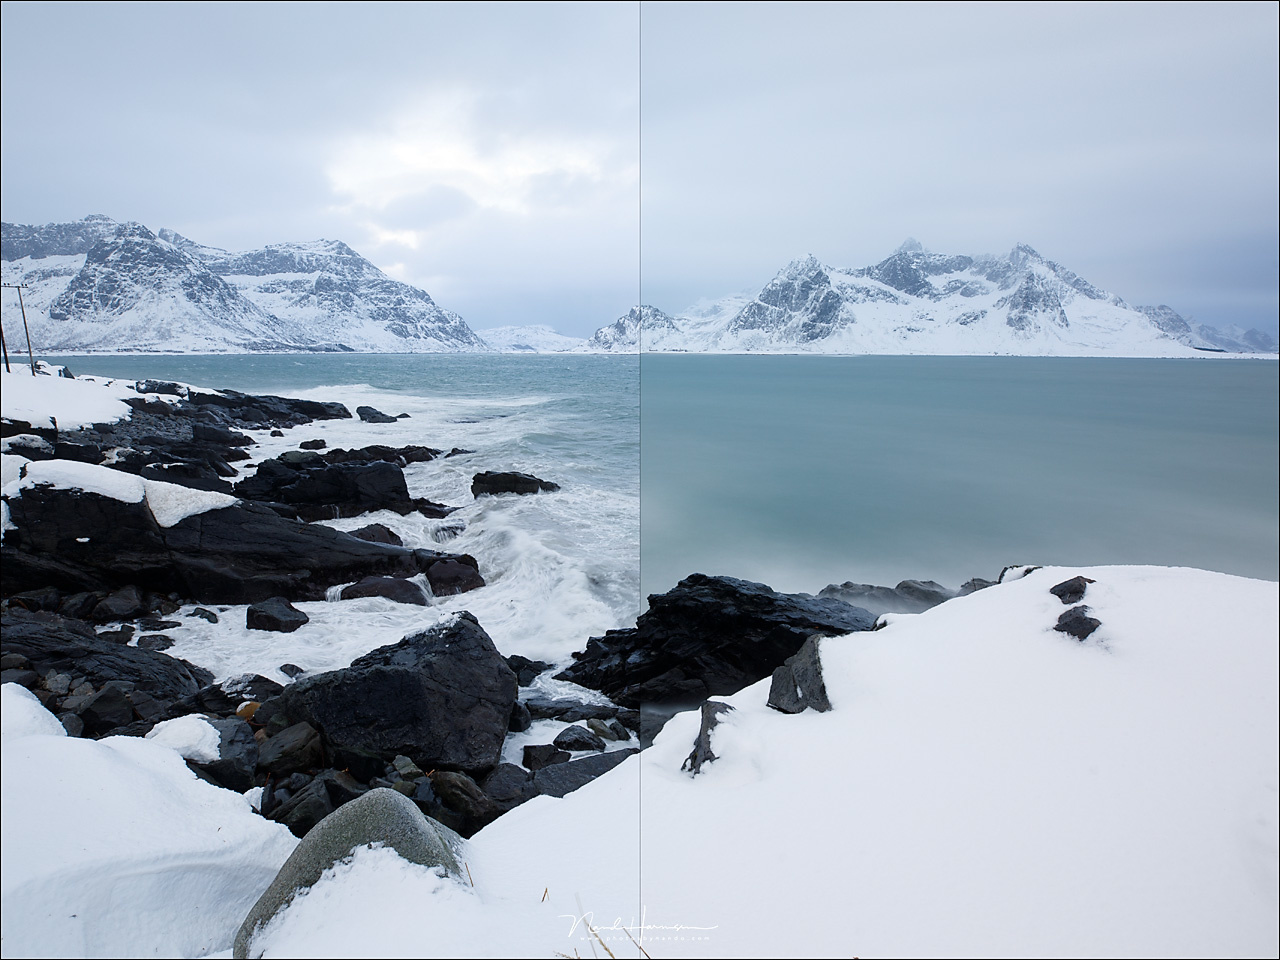 A simple comparison. The left side is without filter and the right side with the Kase ND1000 filter. Both images are shot with 5000K white balance and no post-processing.